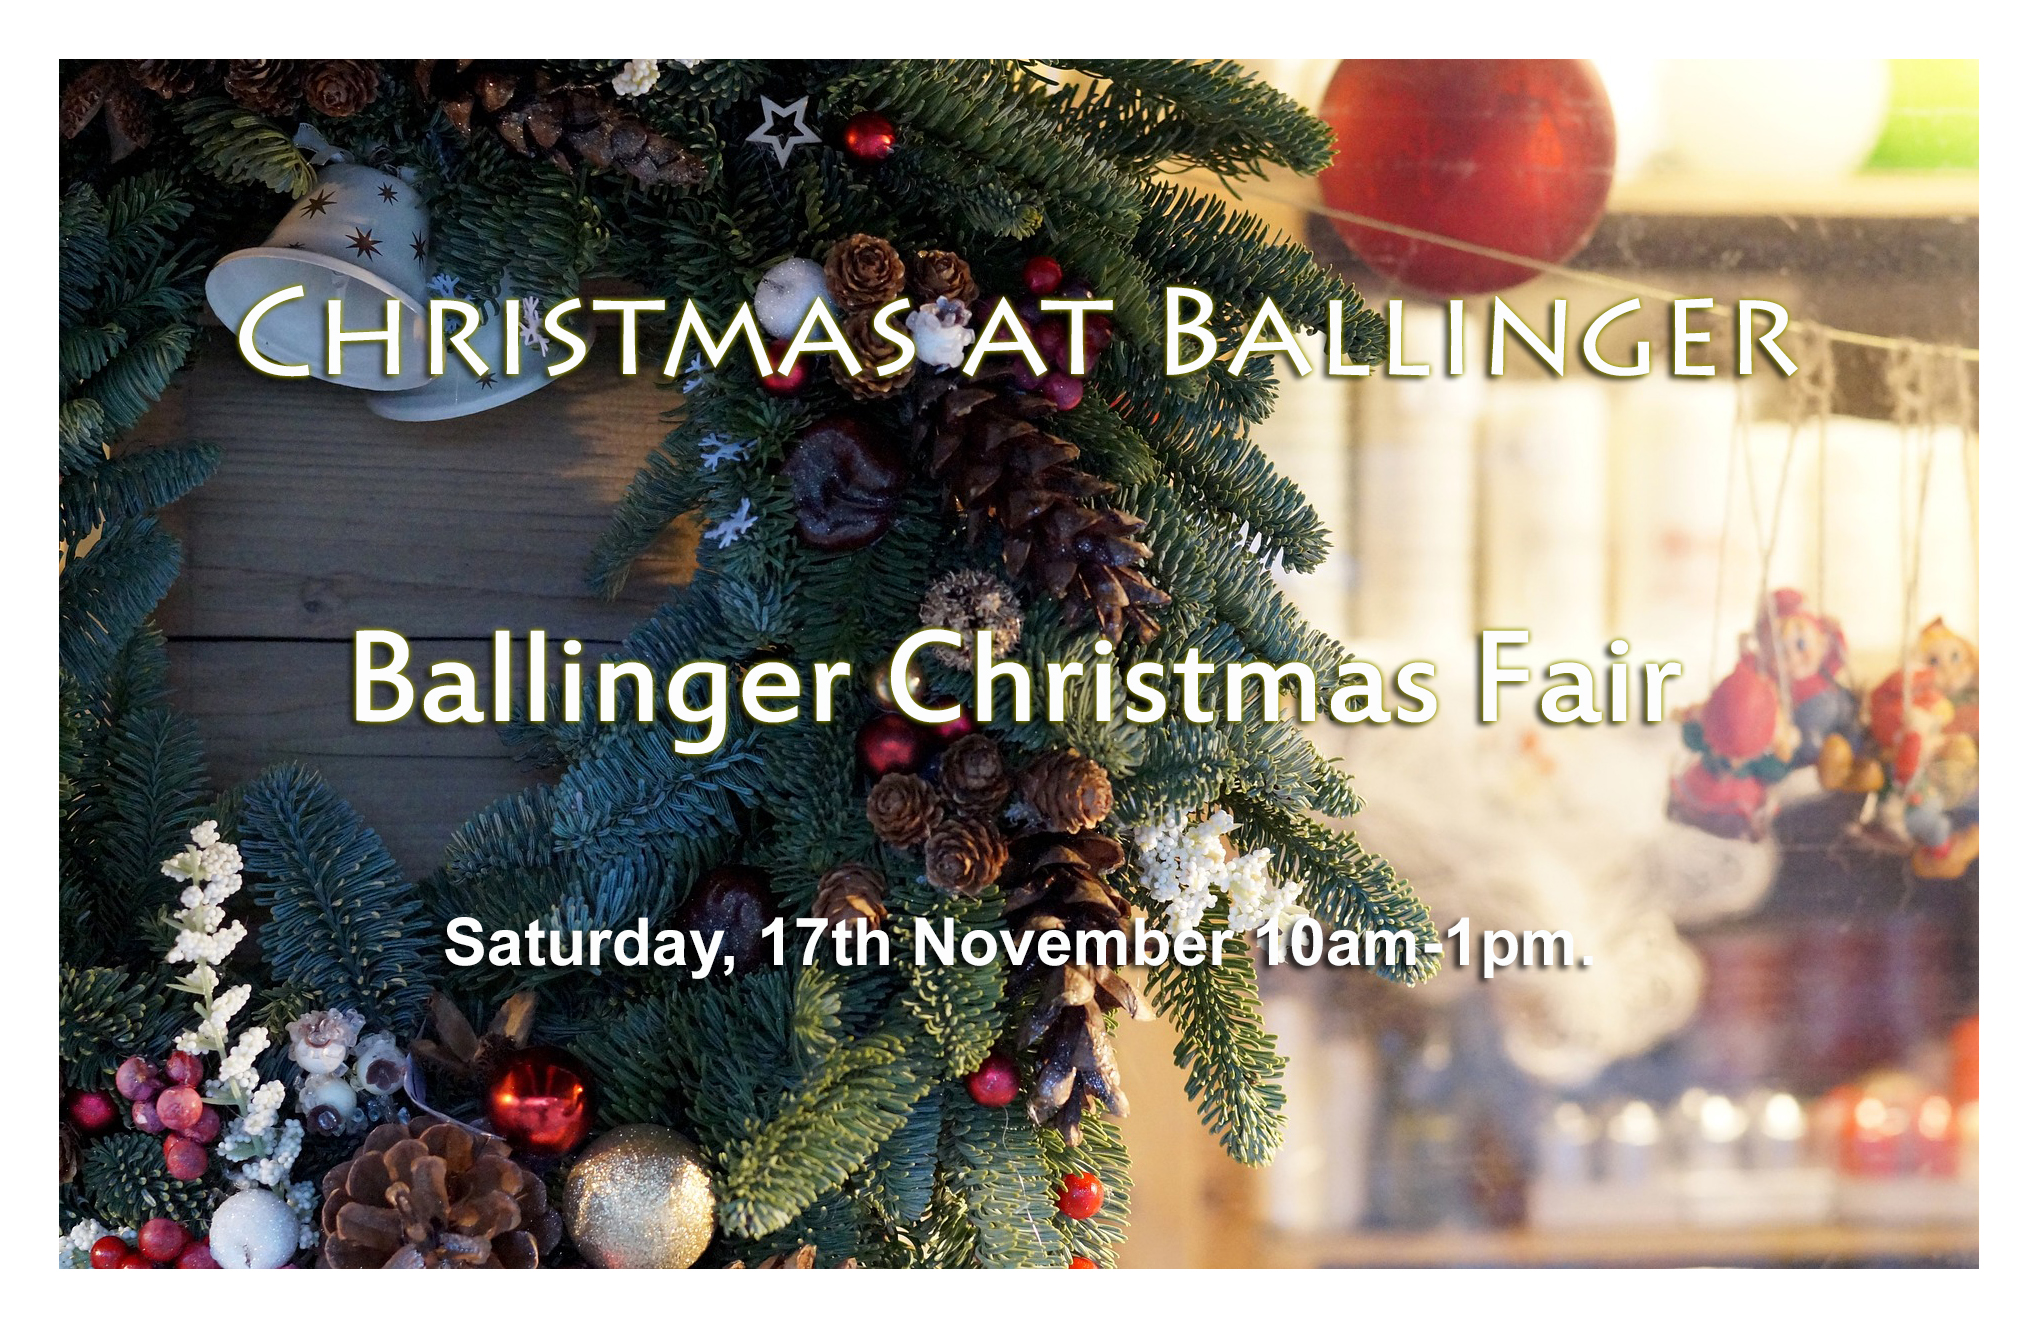 BALLINGER HALL CHRISTMAS FAIR